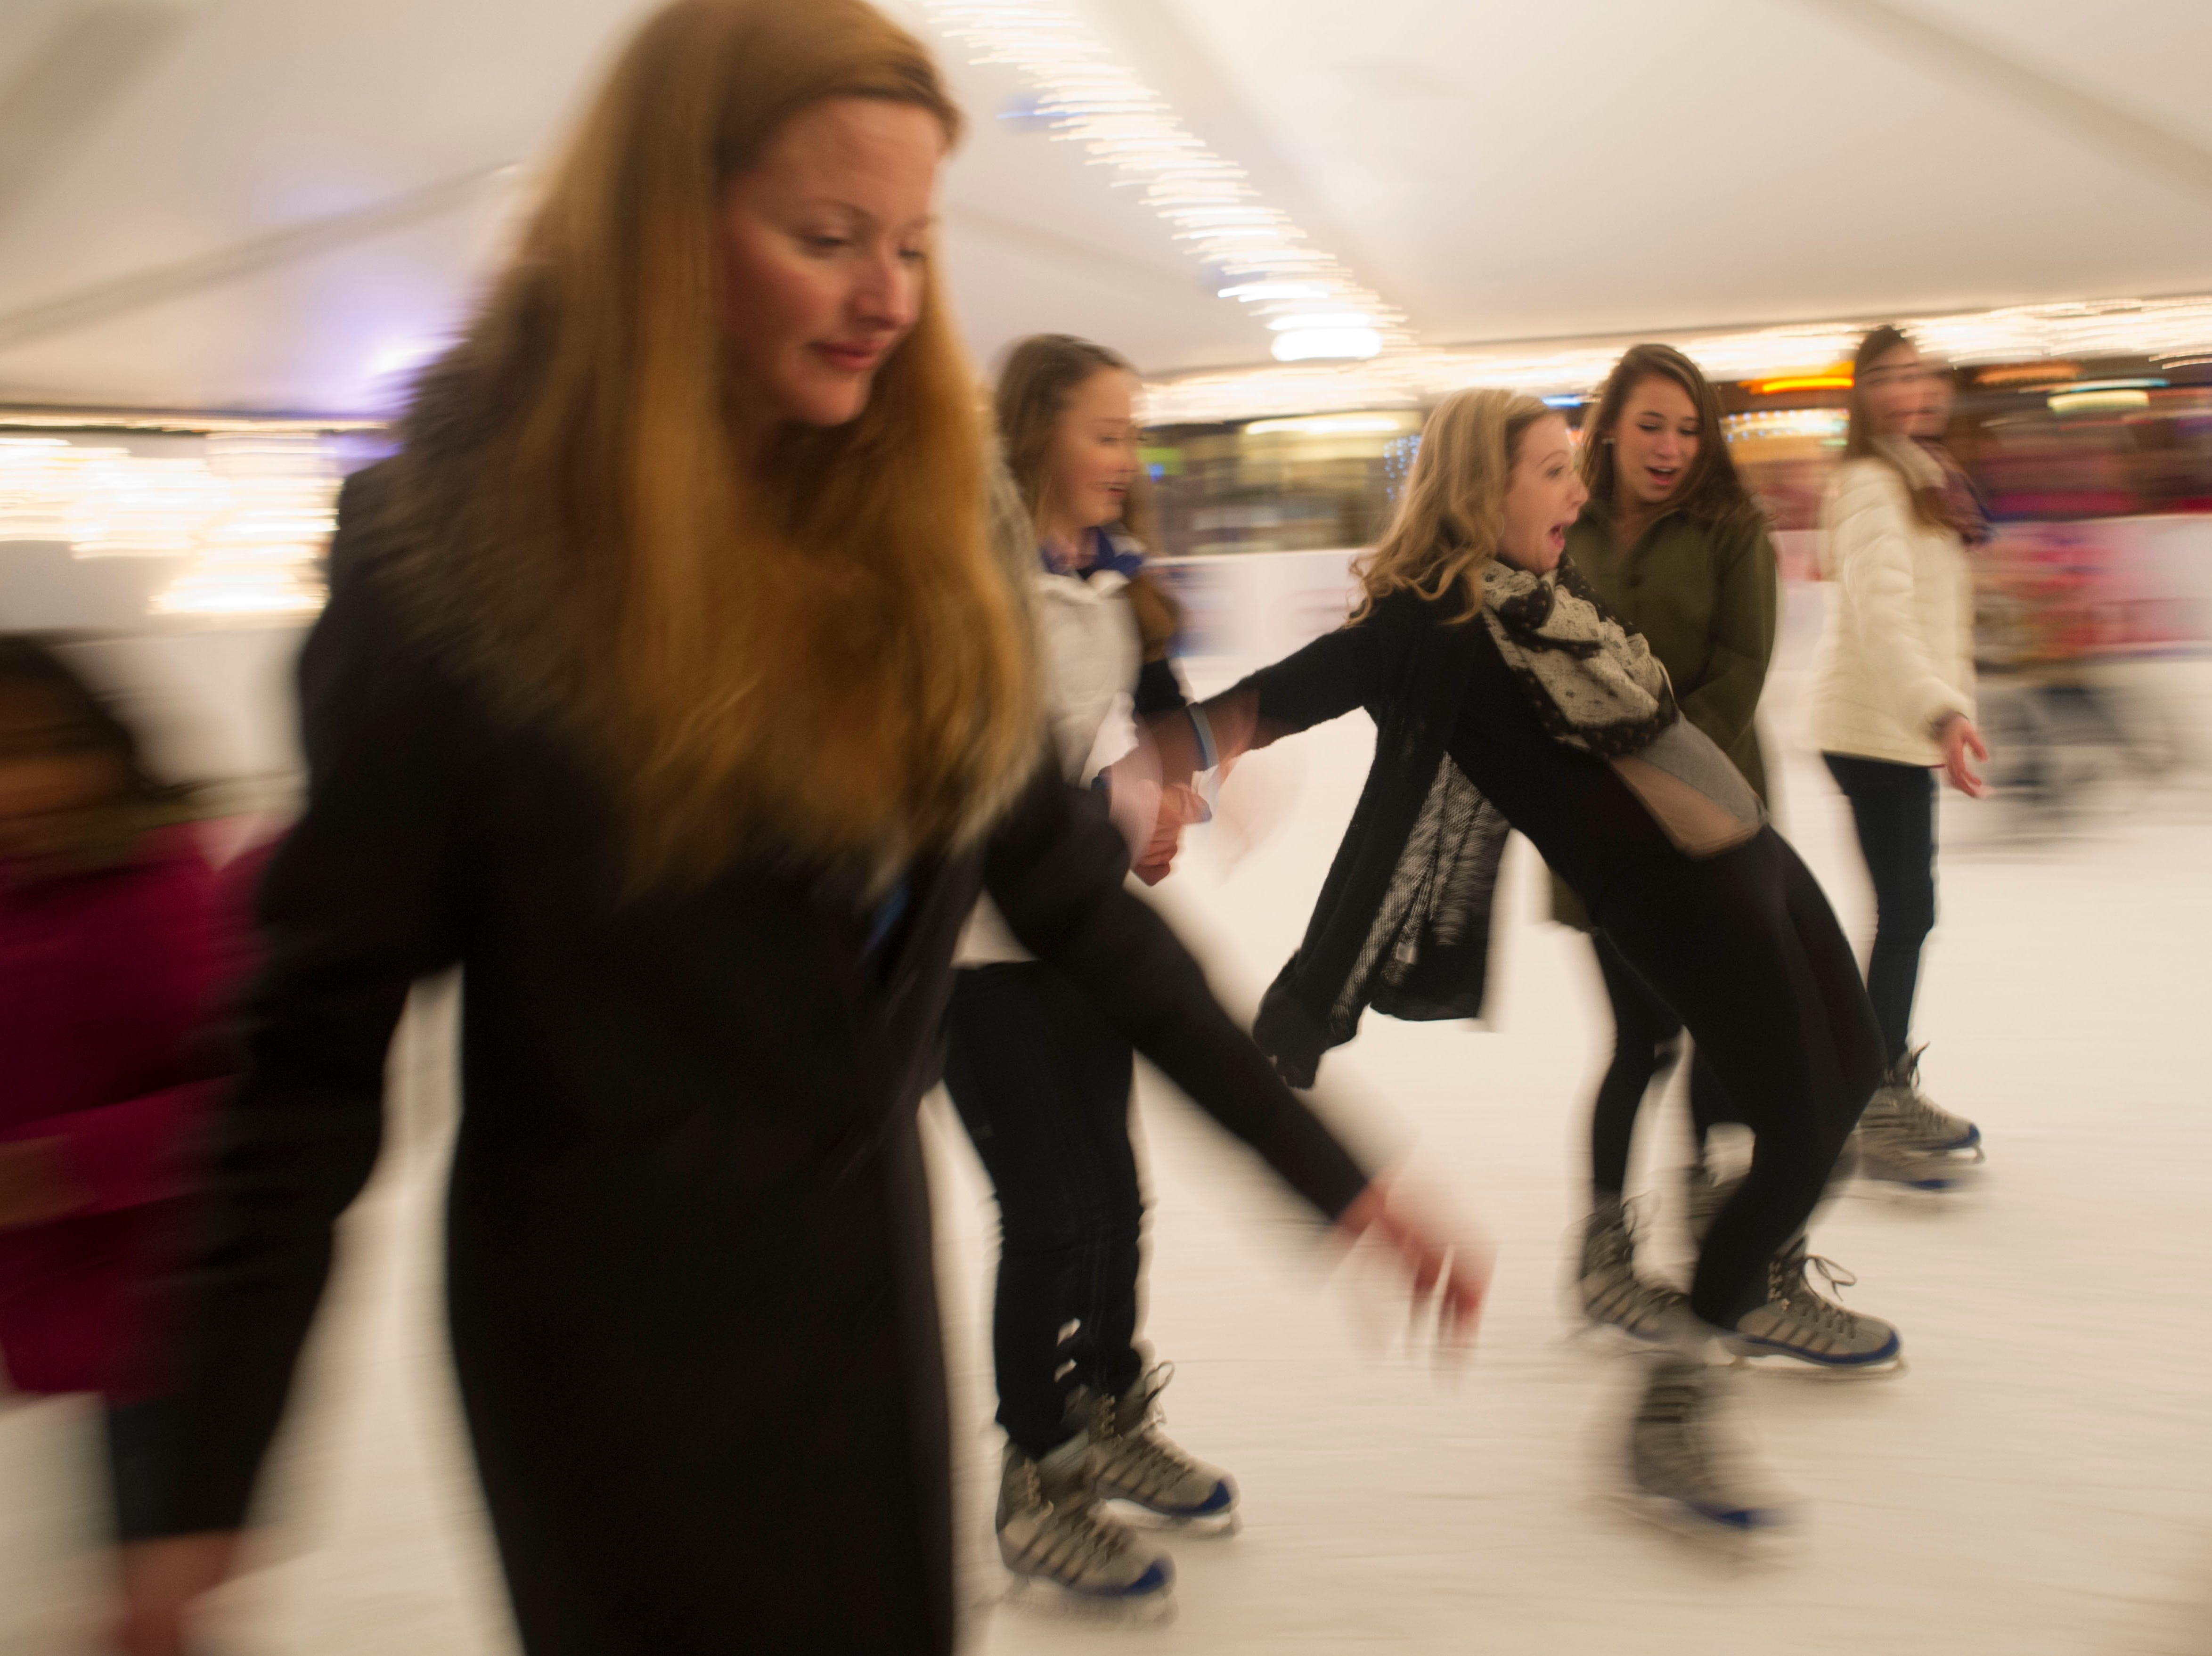 Skaters try to keep their balance while ice staking at Holidays on Ice. The ice rink is staying open until midnight as part of the New Year's Eve celebration on Monday, December 31, 2012.